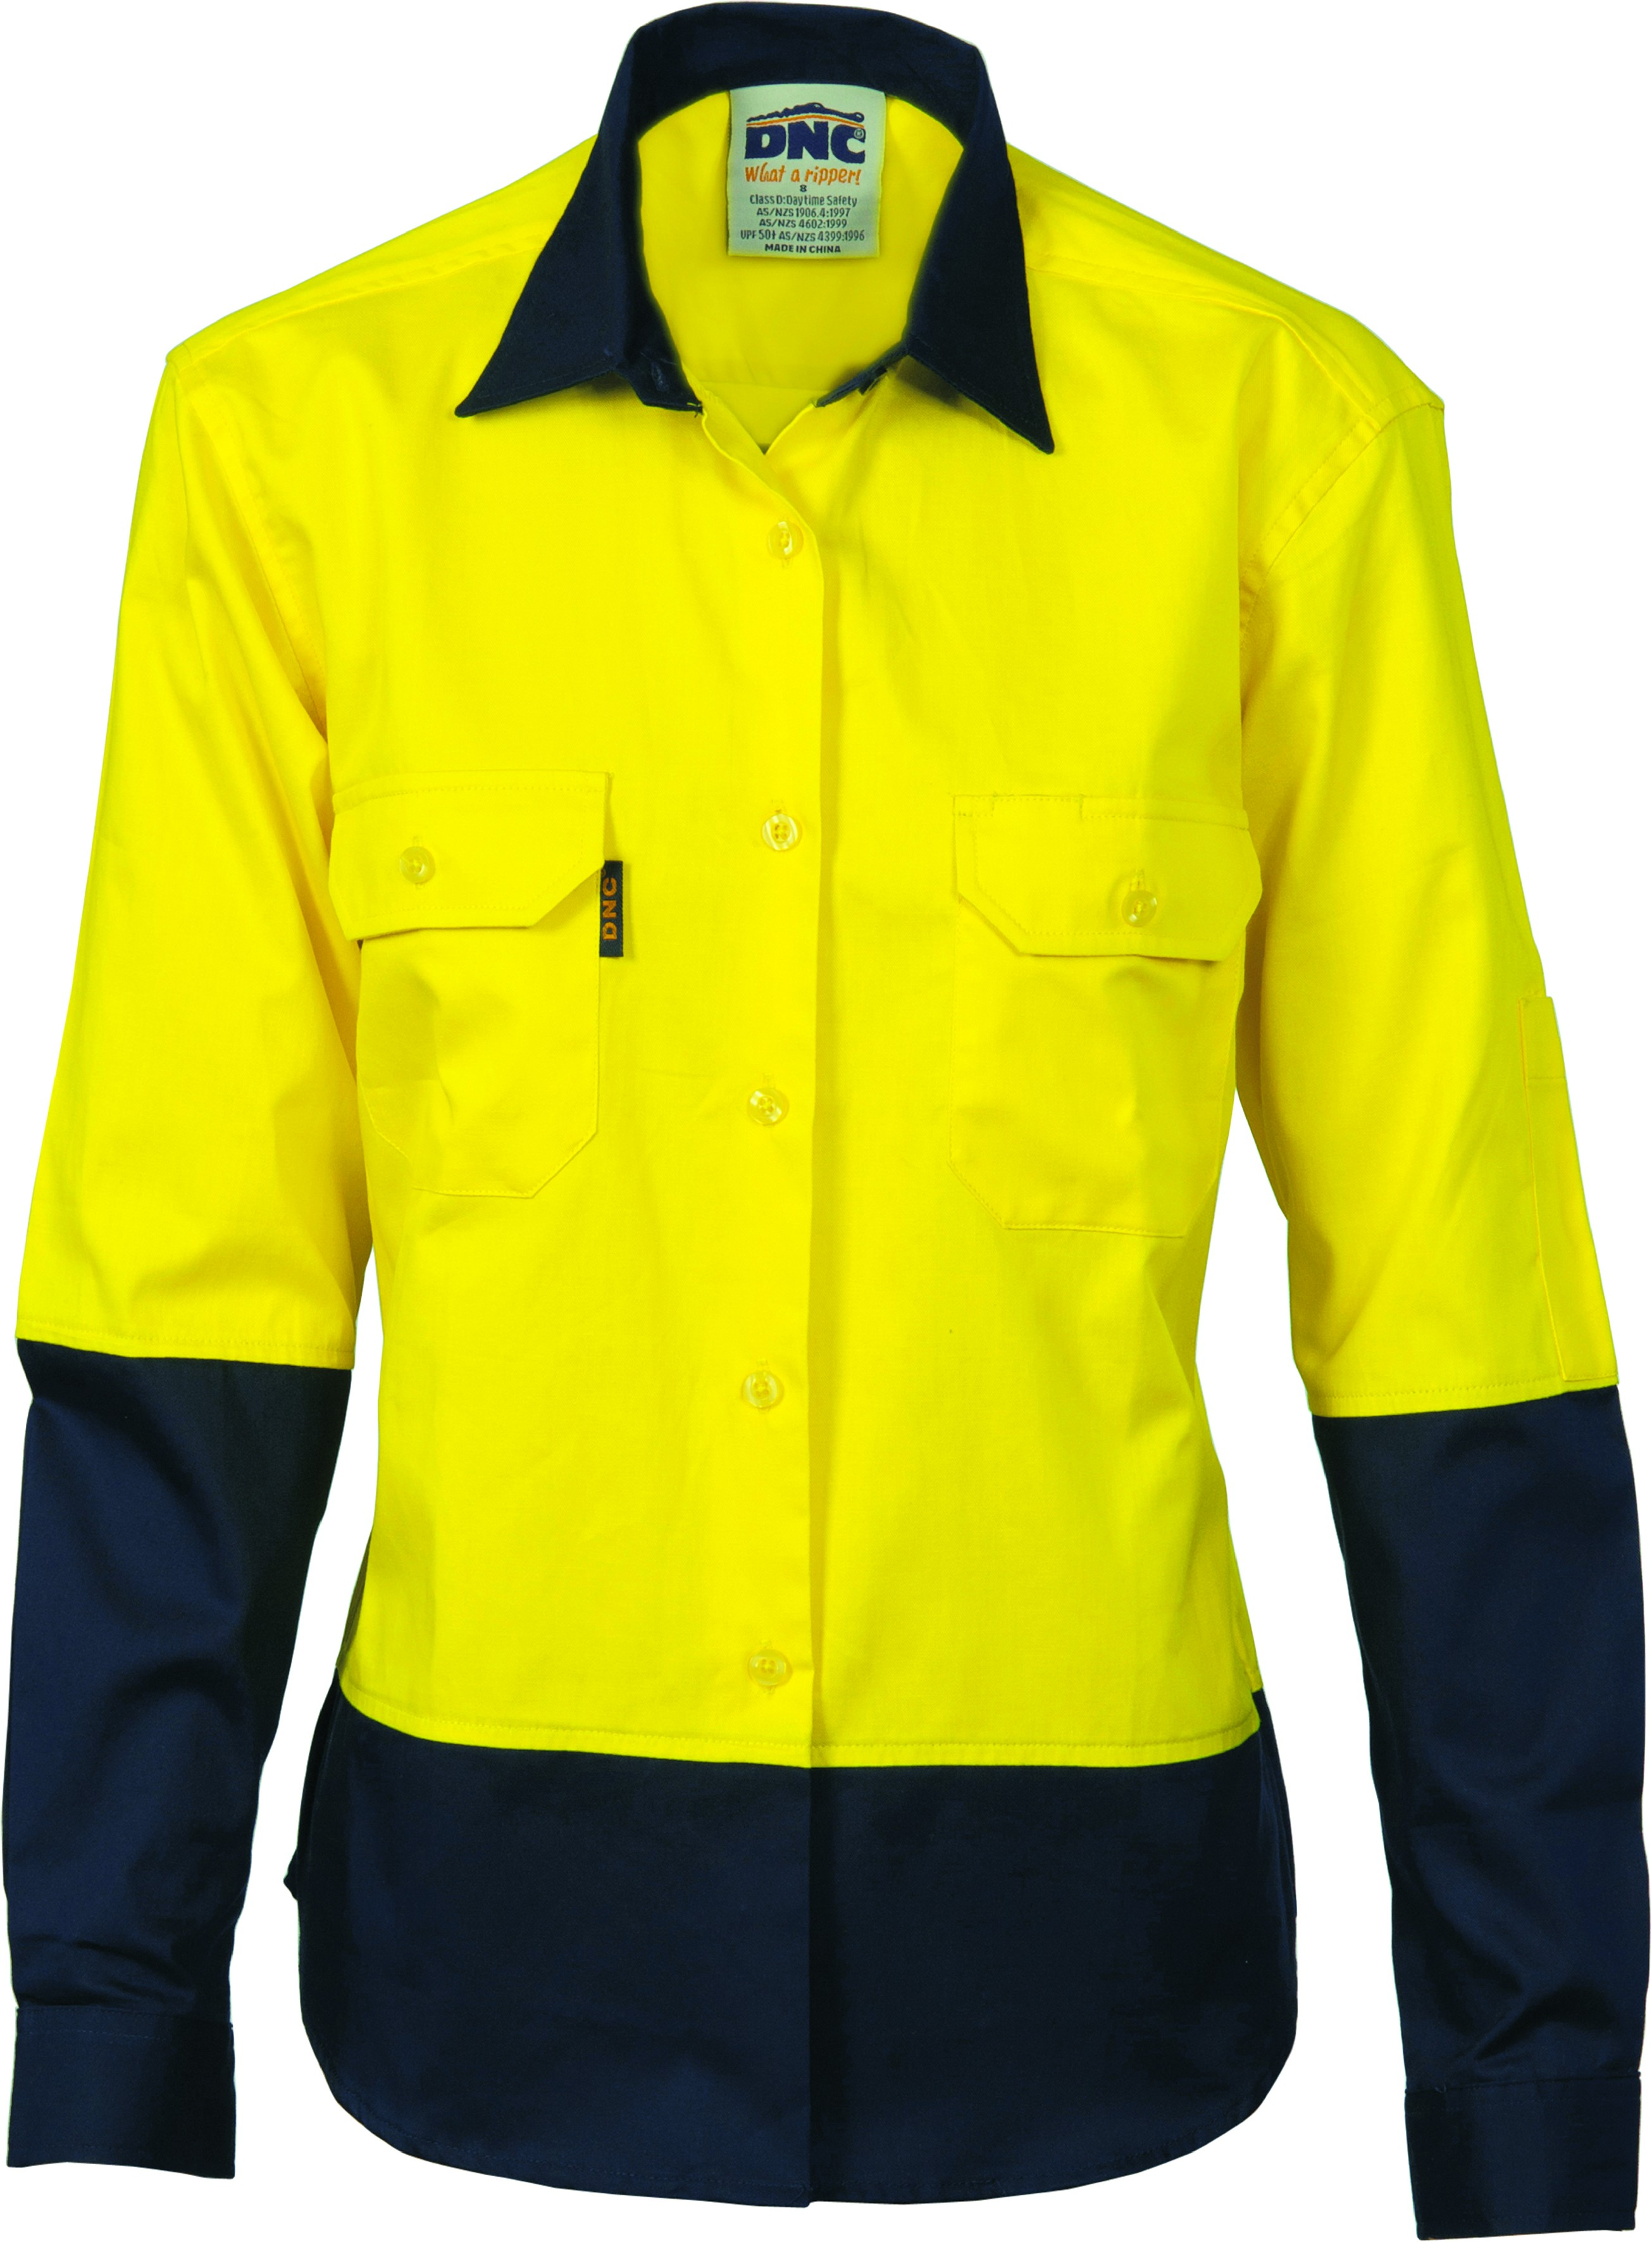 Ladies Hi Vis Cool-Breeze Cotton Shirt - Long Sleeve